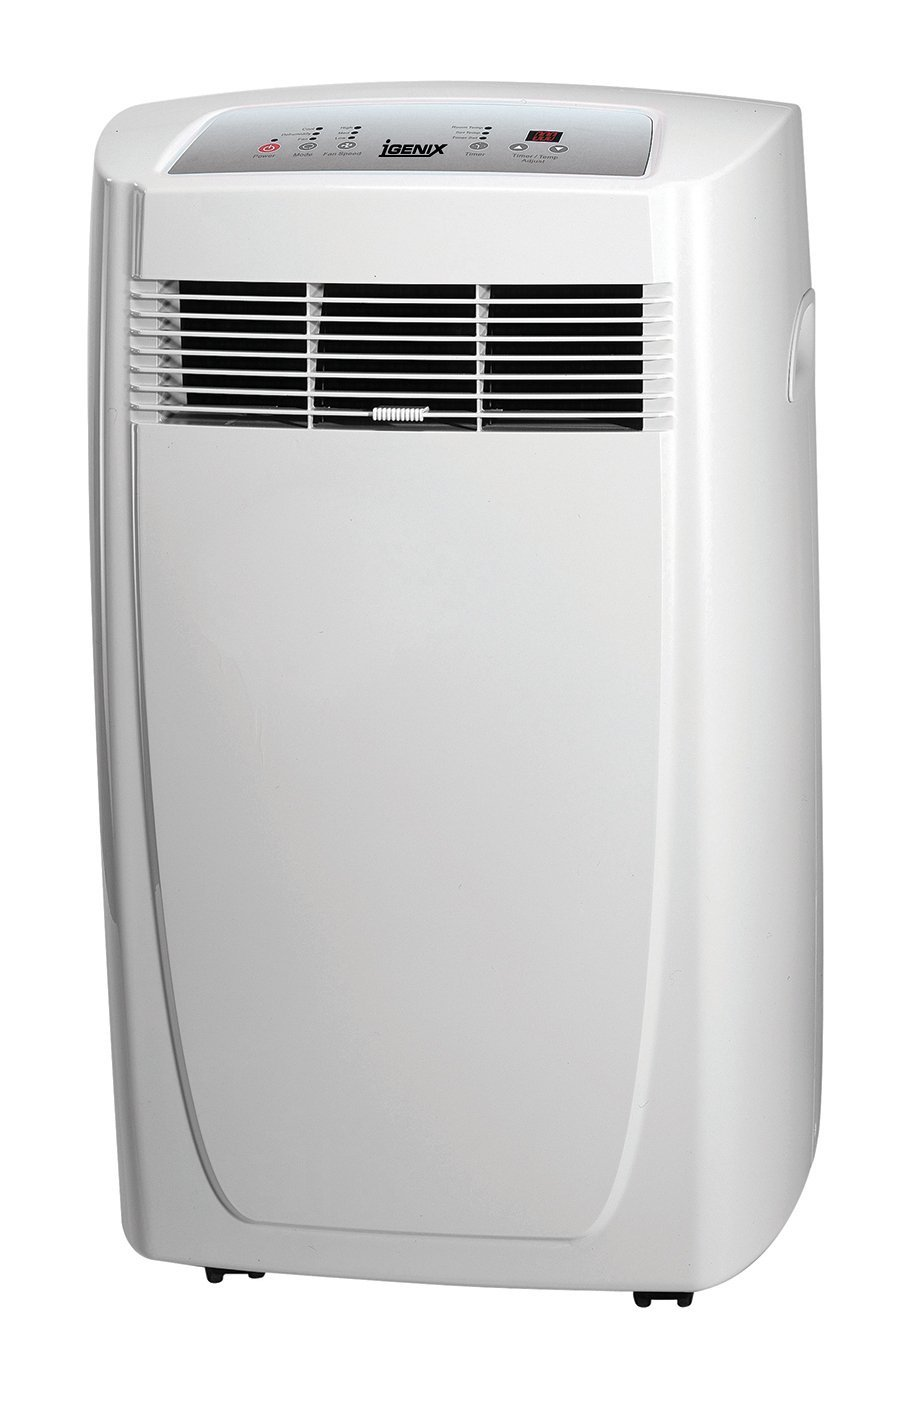 Best Portable Air Conditioner Unit For Sleepless Nights